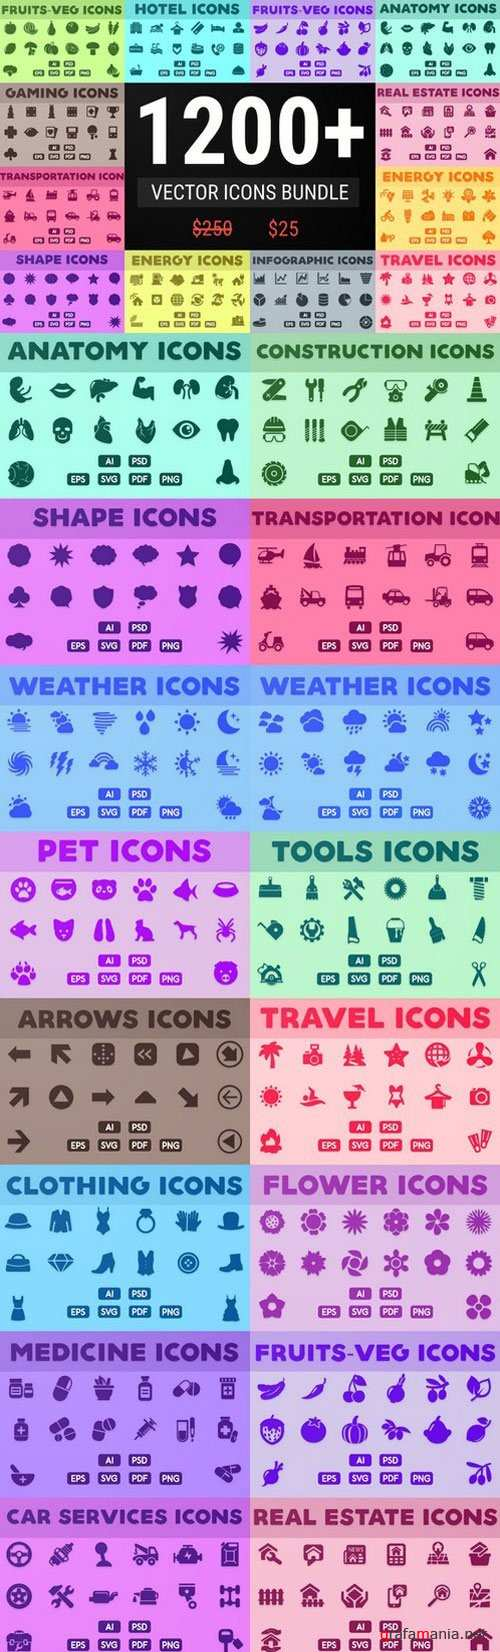 Vector Icons Bundle - 866568